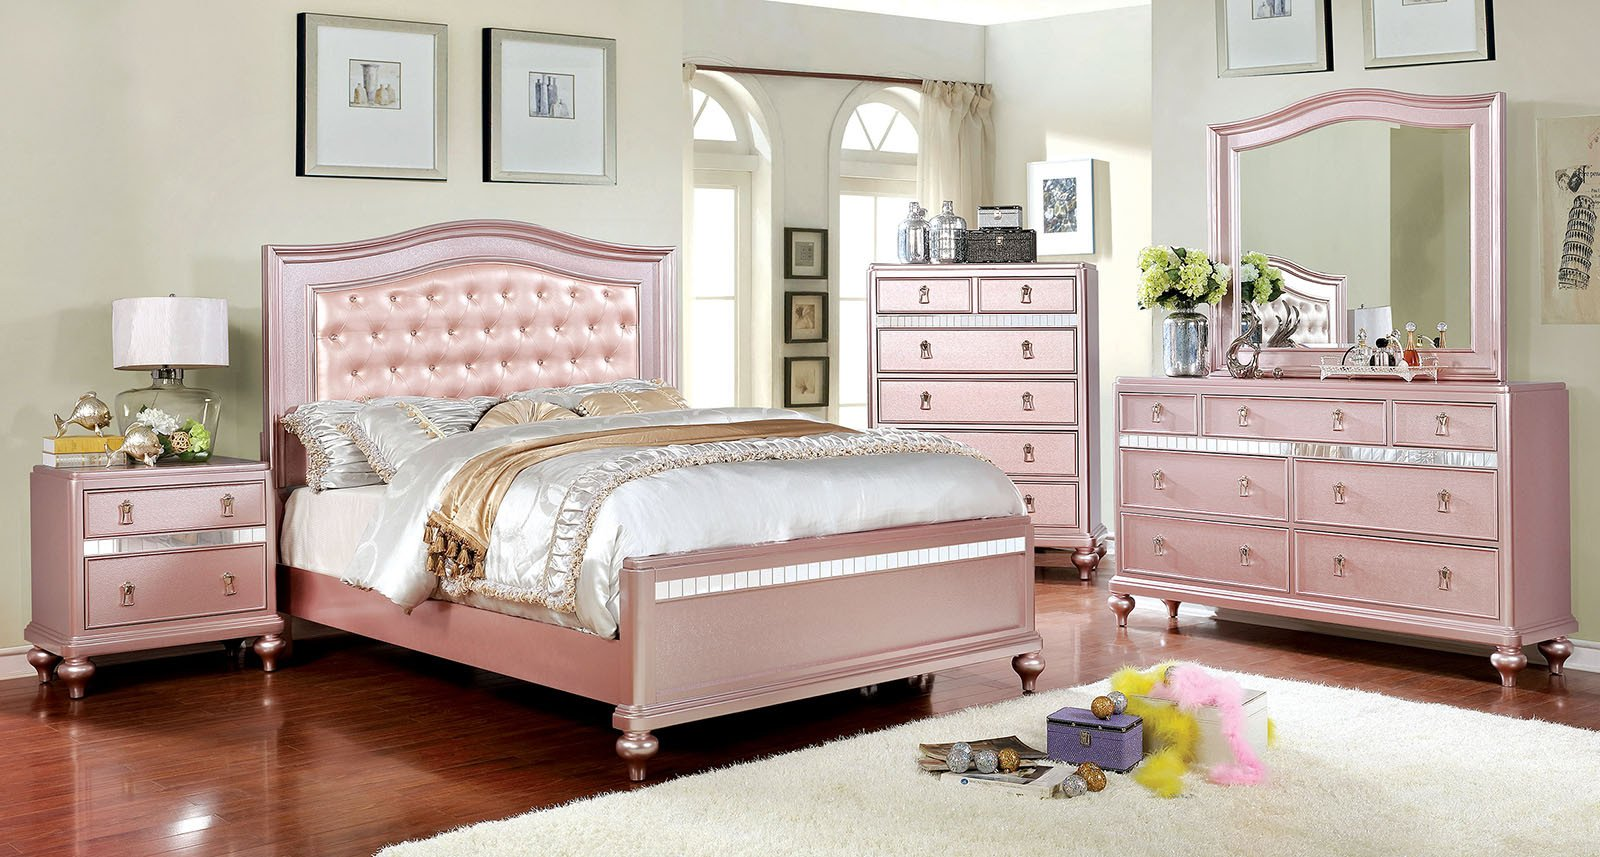 Mirrored Queen Bedroom Set Best Of Ariston Rose Gold Finish Queen Size Bed with Mirrored Trim Jeweled button Tufted Padded Leather Headboard